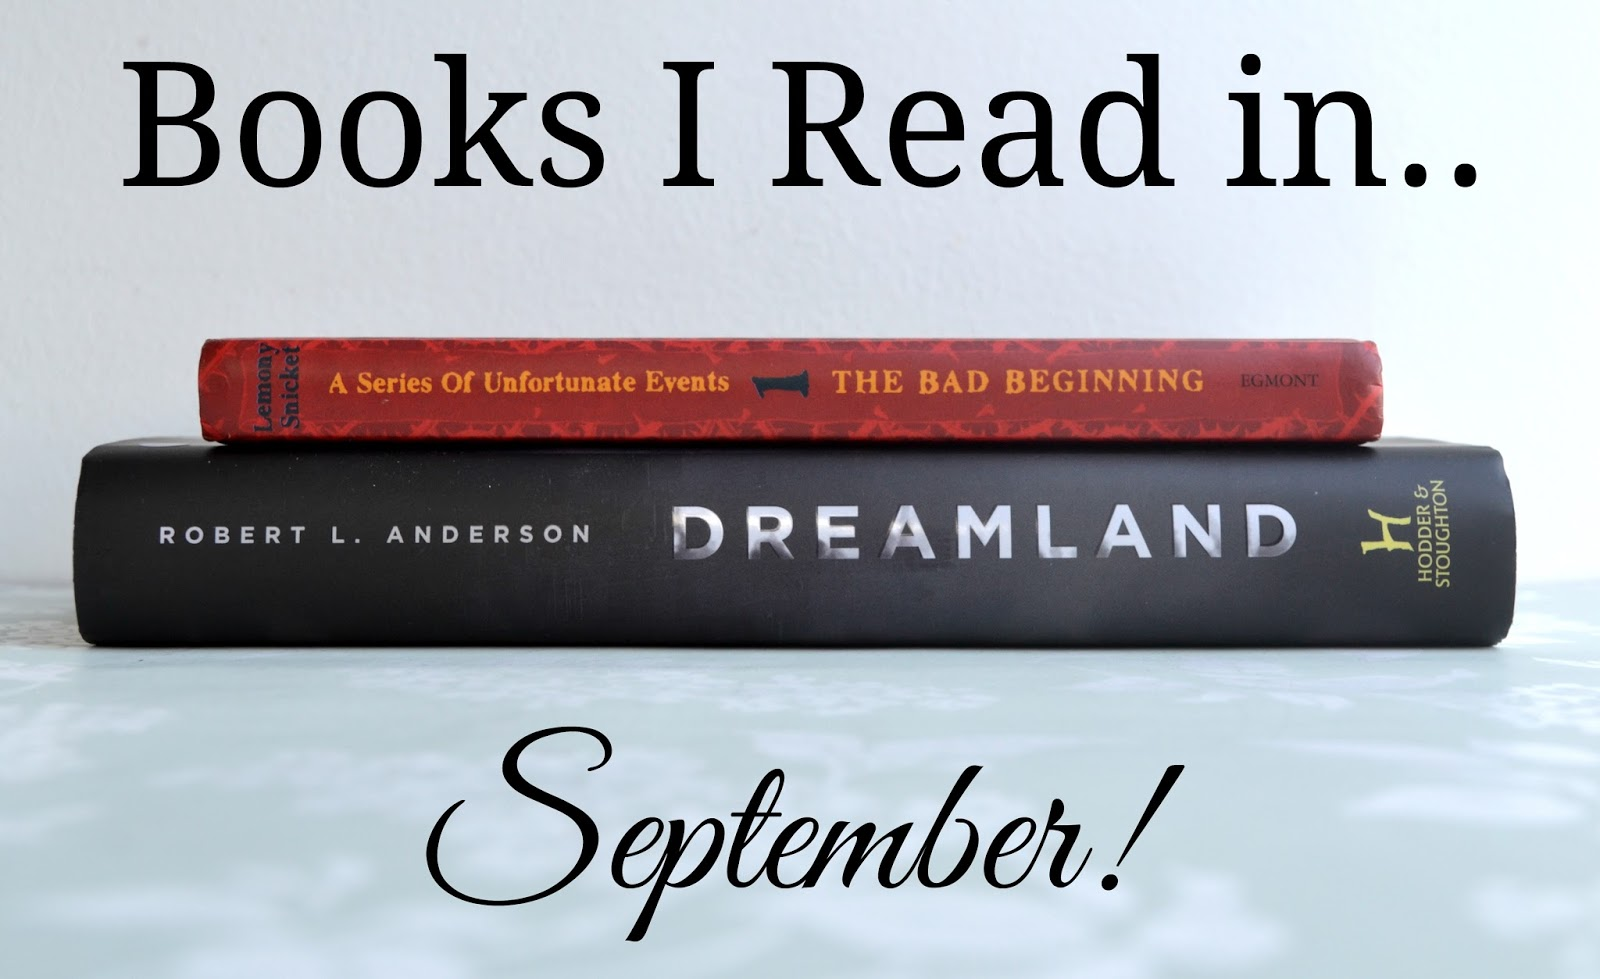 The Bad Beginning by Lemony Snicket and Dreamland by Robert L. Anderson.